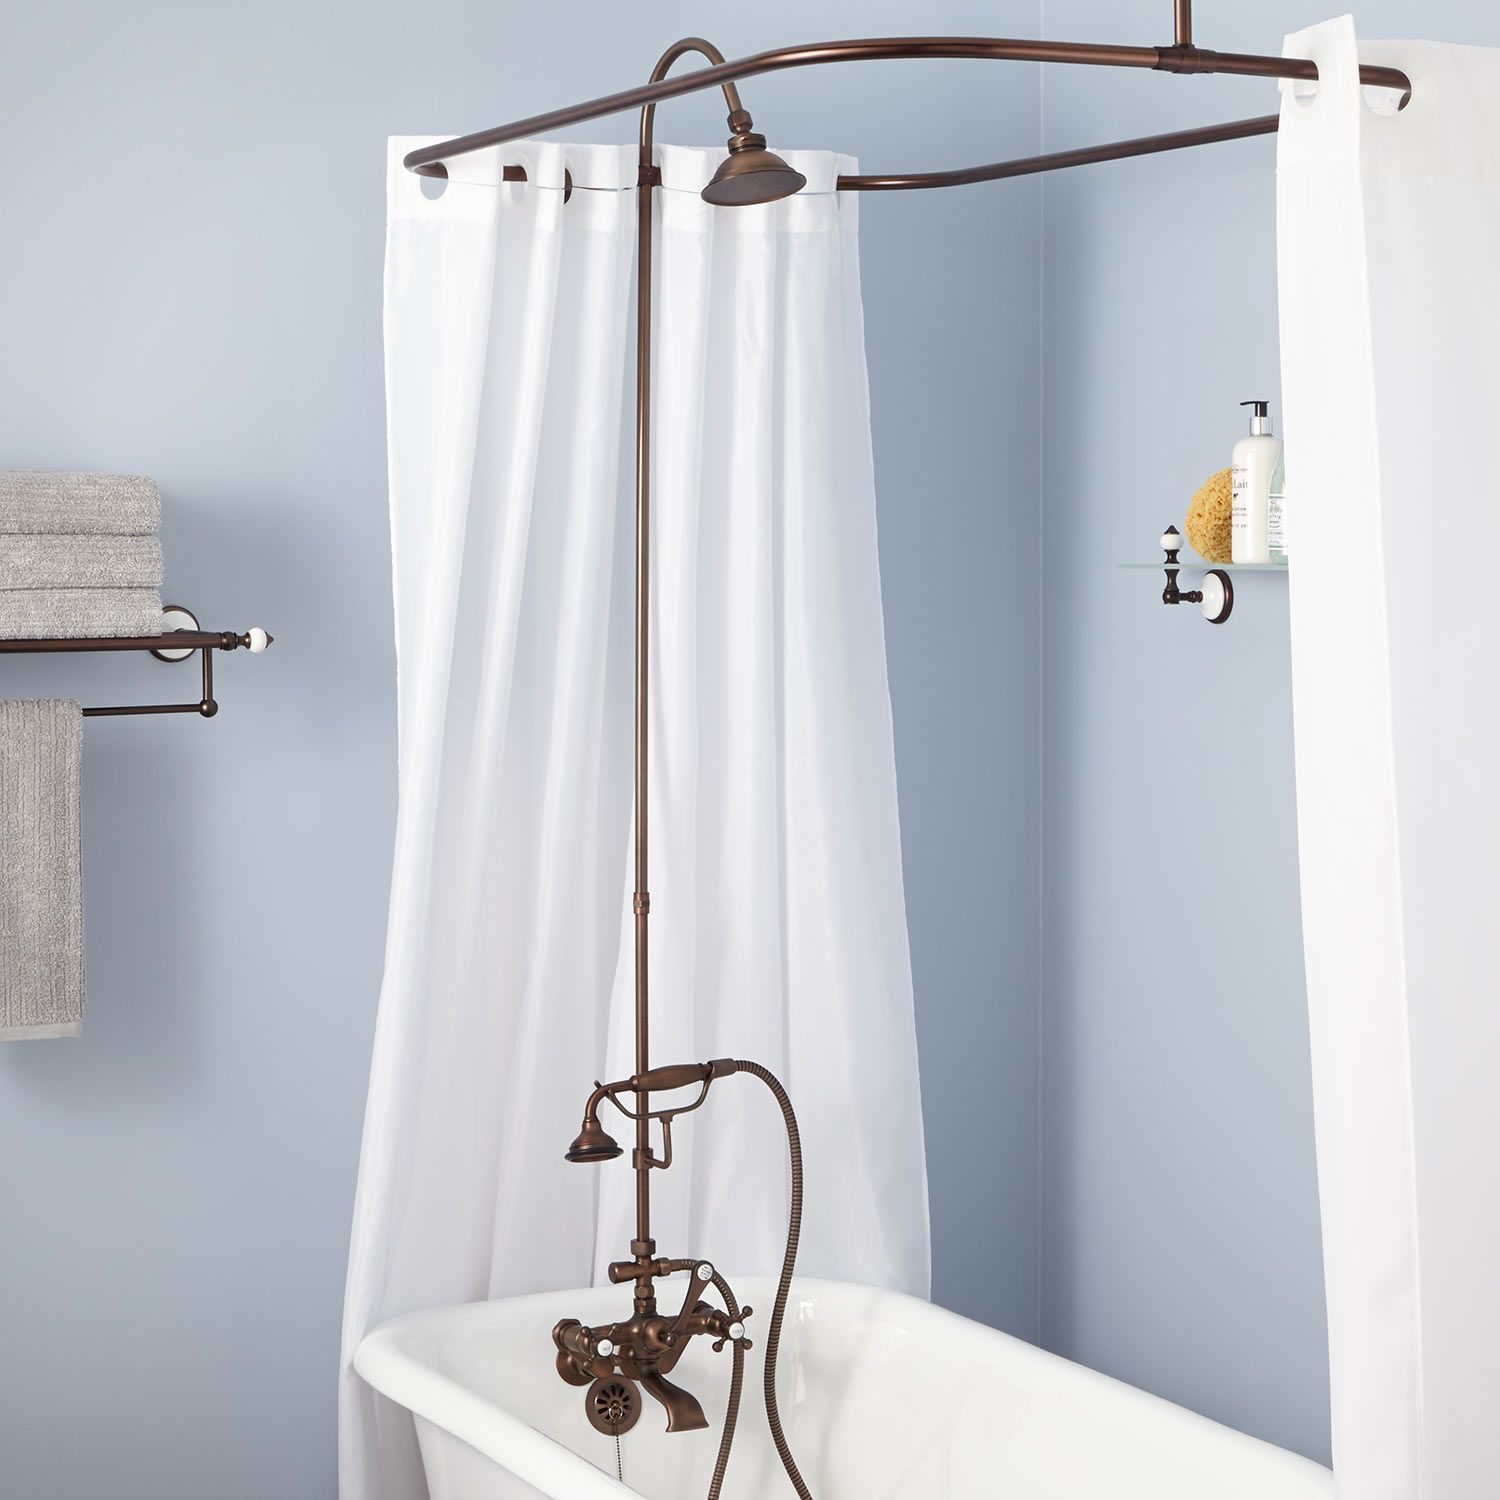 Gooseneck Shower Conversion Kit With Hand Shower Clawfoot Tub